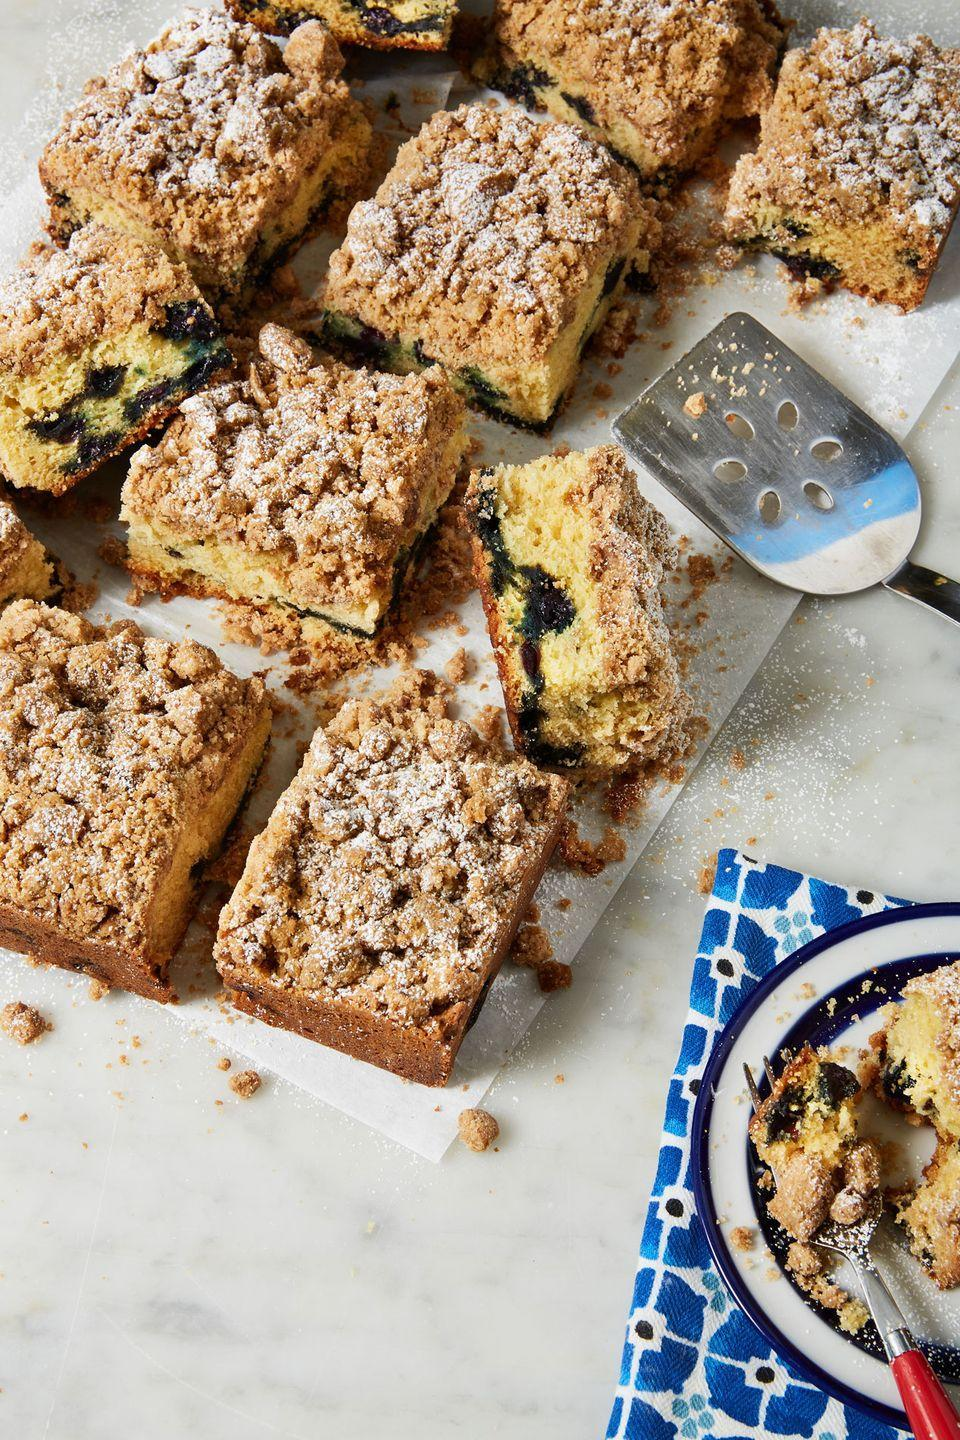 """<p>Your mom will LOVE these.</p><p>Get the recipe from <a href=""""https://www.delish.com/cooking/recipe-ideas/a31403712/blueberry-coffee-cake-recipe/"""" rel=""""nofollow noopener"""" target=""""_blank"""" data-ylk=""""slk:Delish."""" class=""""link rapid-noclick-resp"""">Delish.</a></p>"""